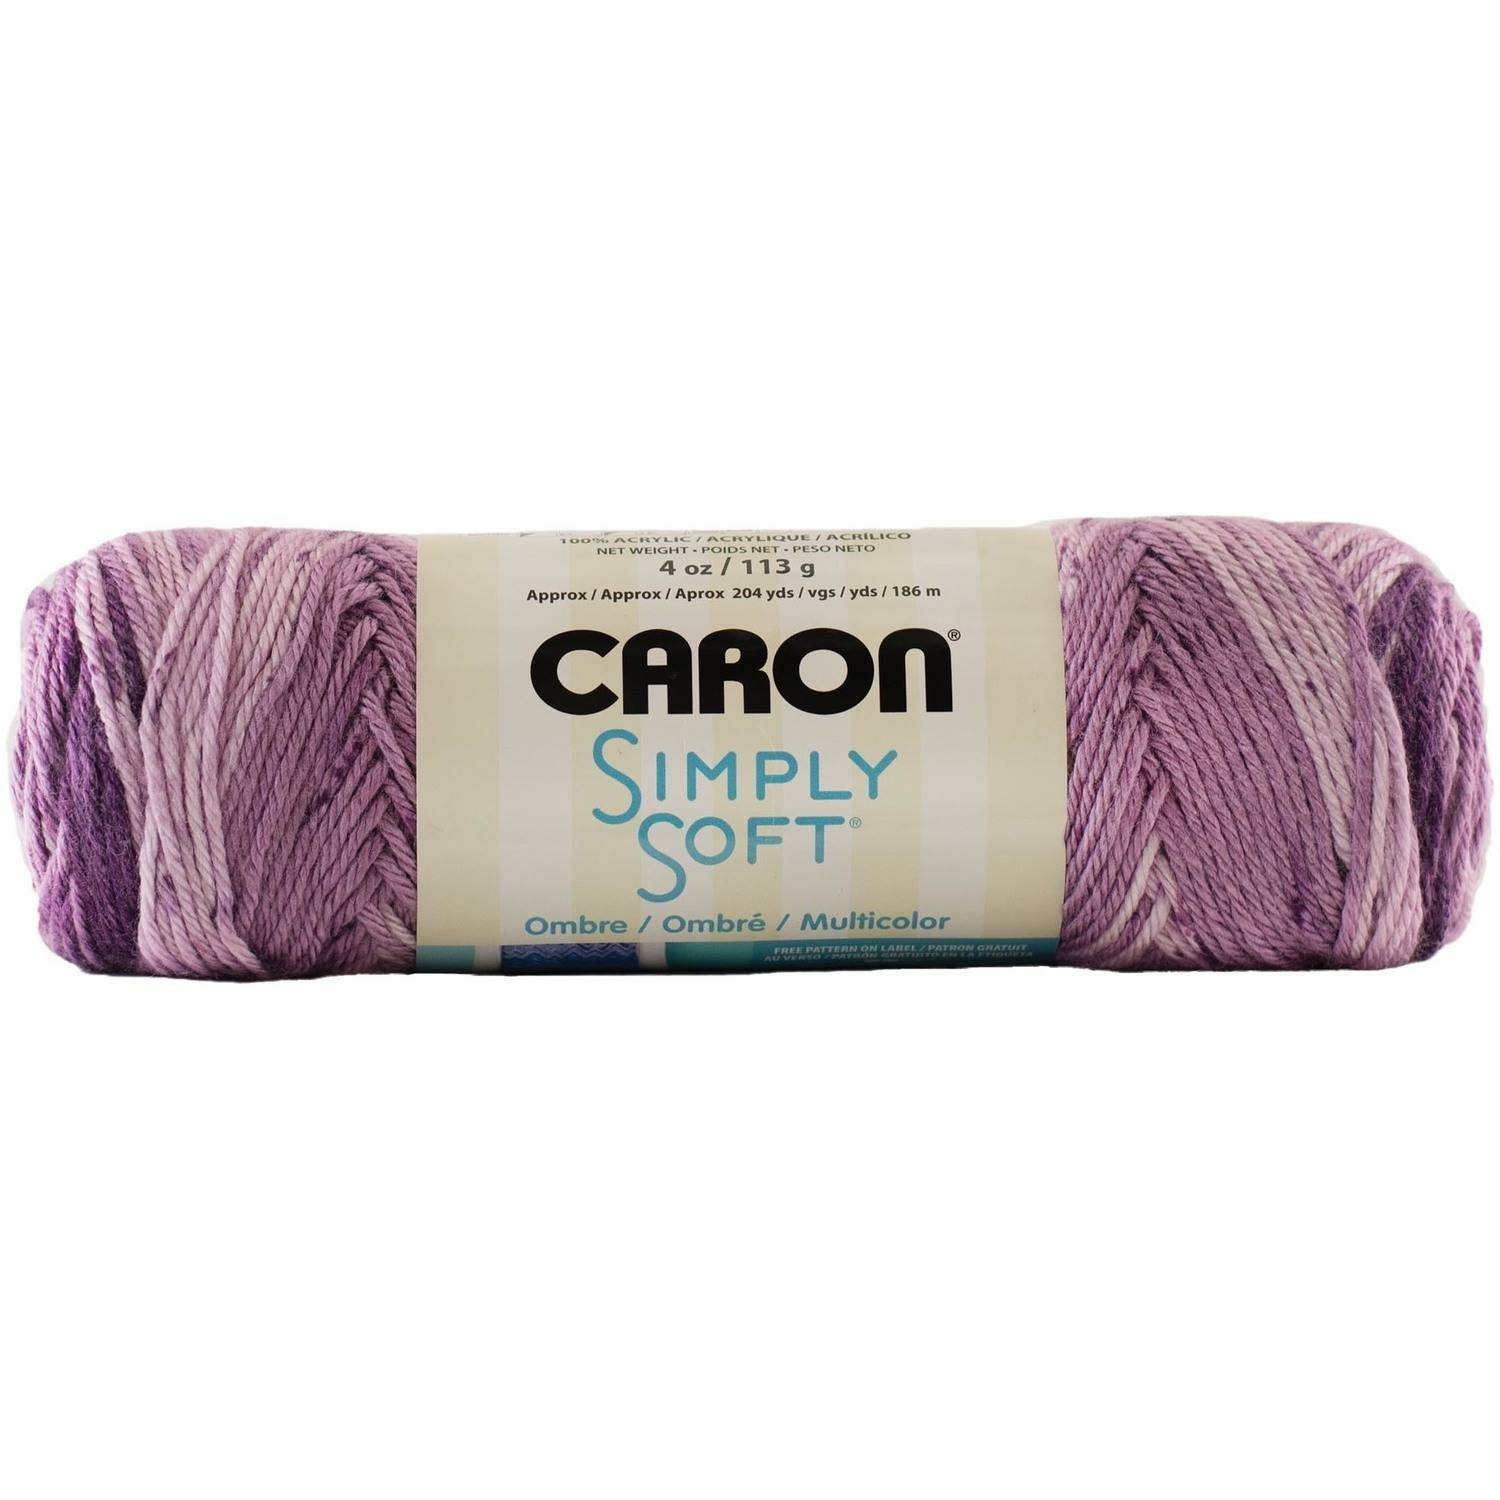 Caron Simply Soft Ombre Yarn, 113 grams, Grape Purple